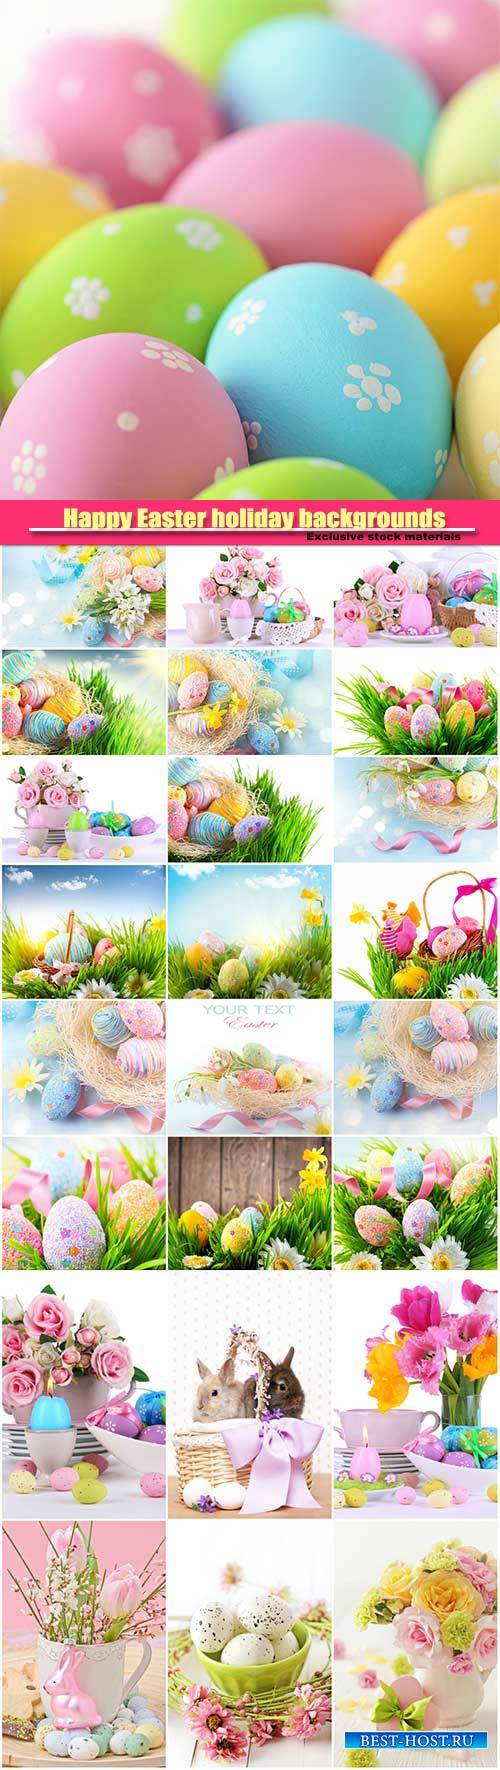 Happy Easter holiday backgrounds, Easter eggs